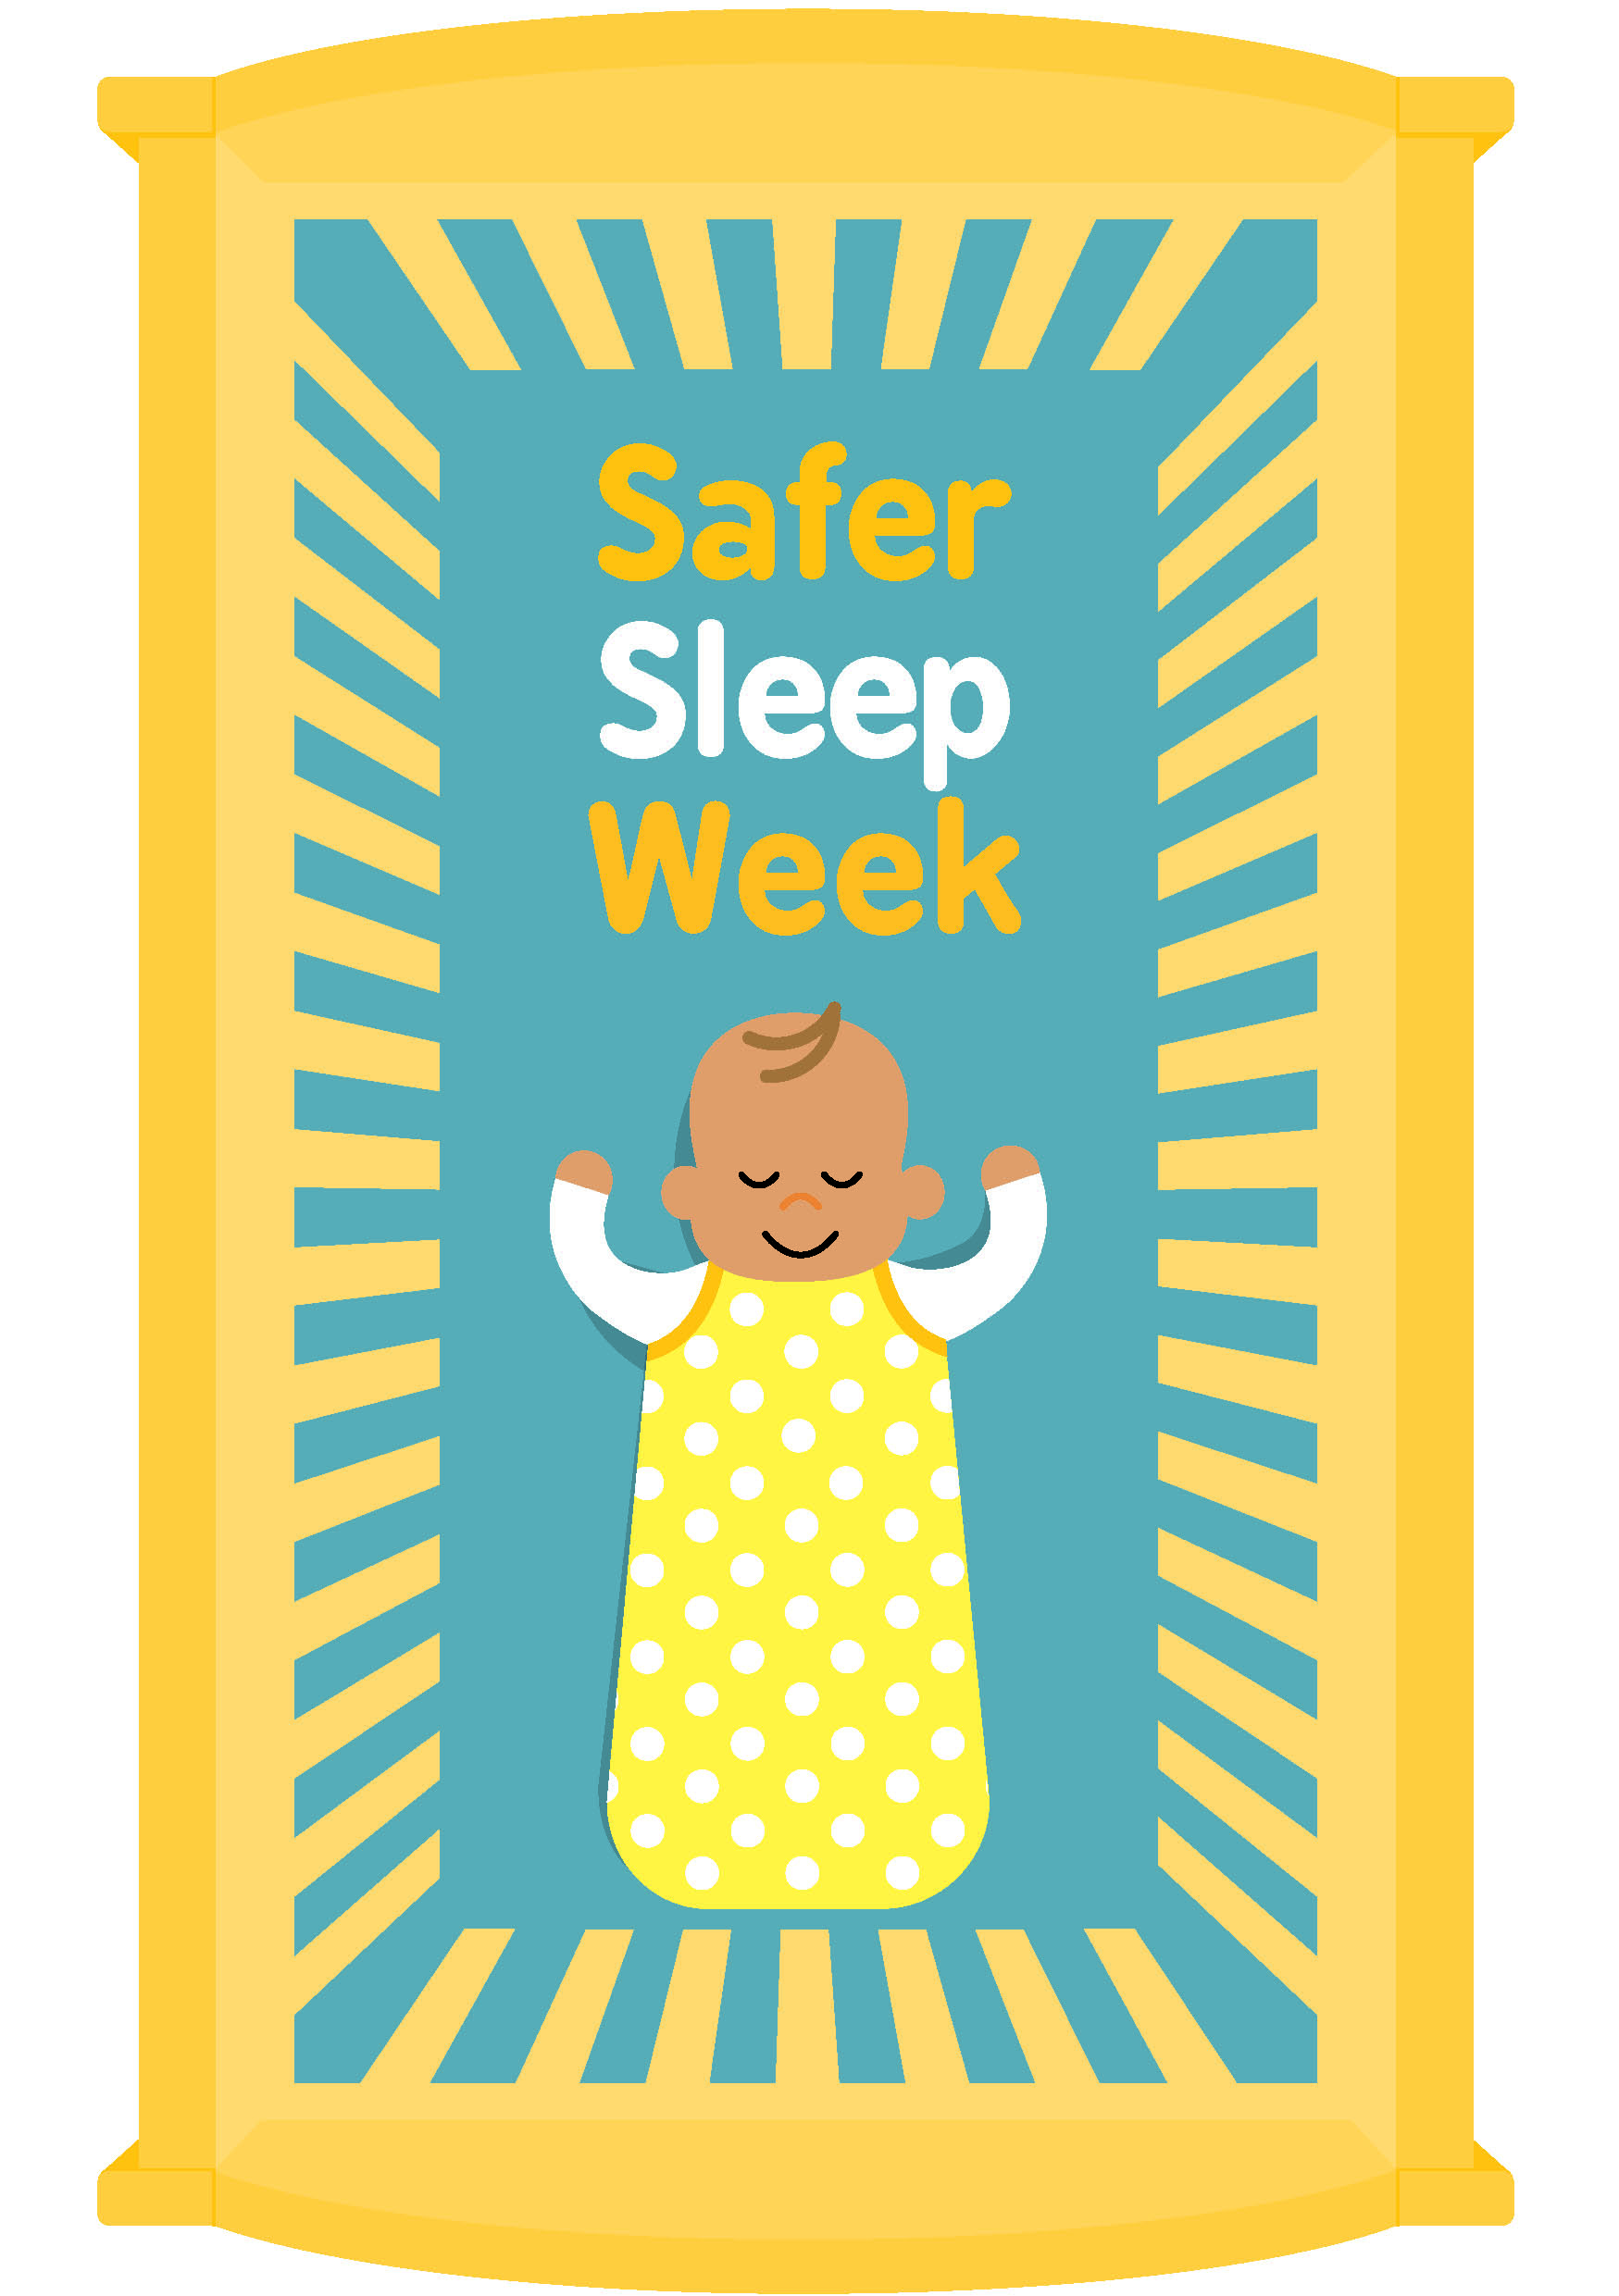 SnoozeShade is supporting #SaferSleepWeek.